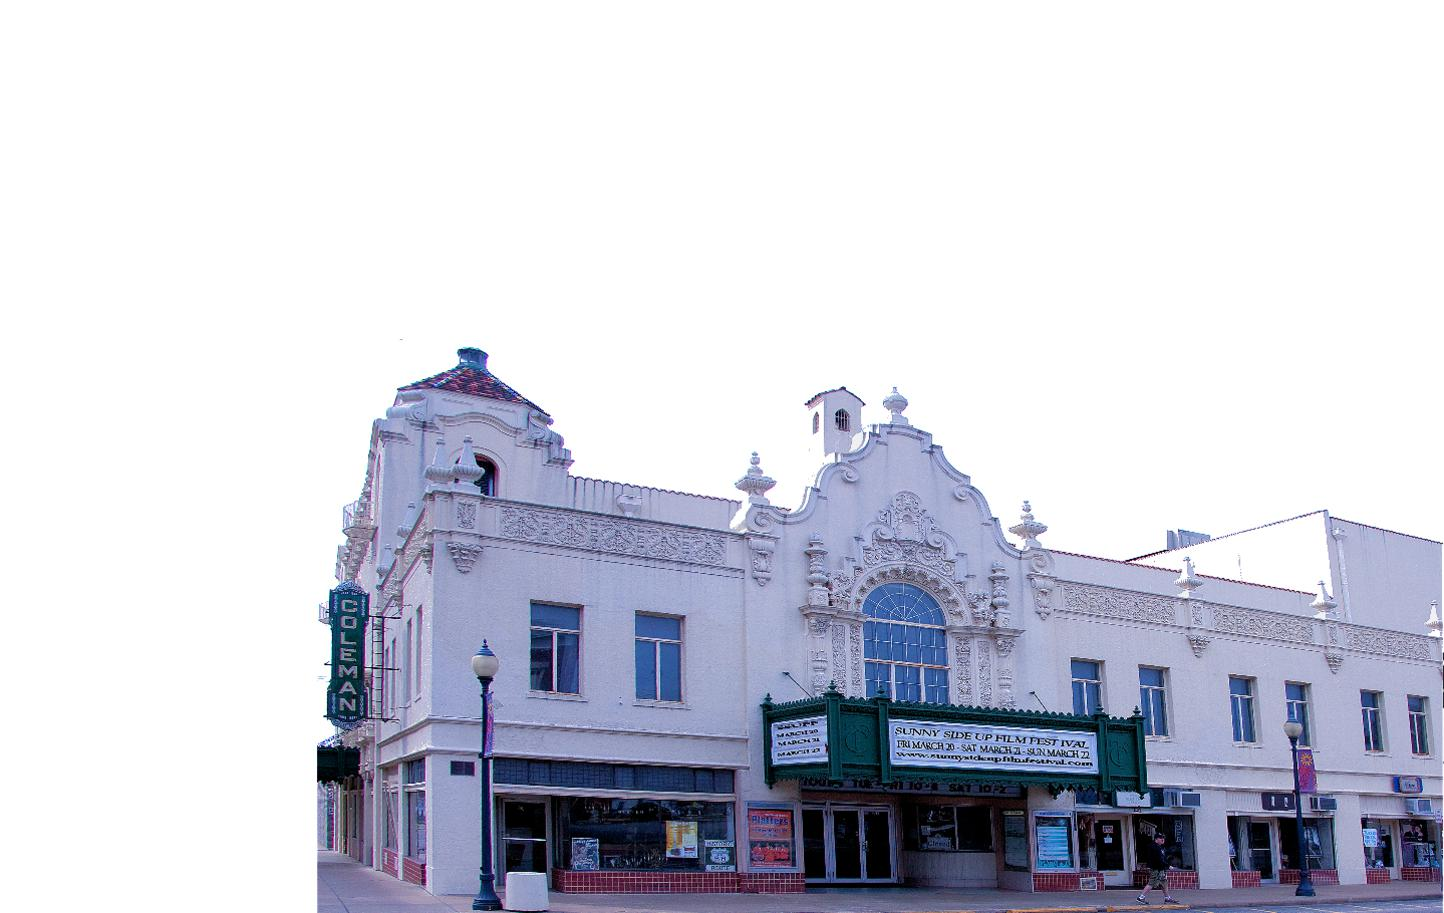 The Coleman Theatre